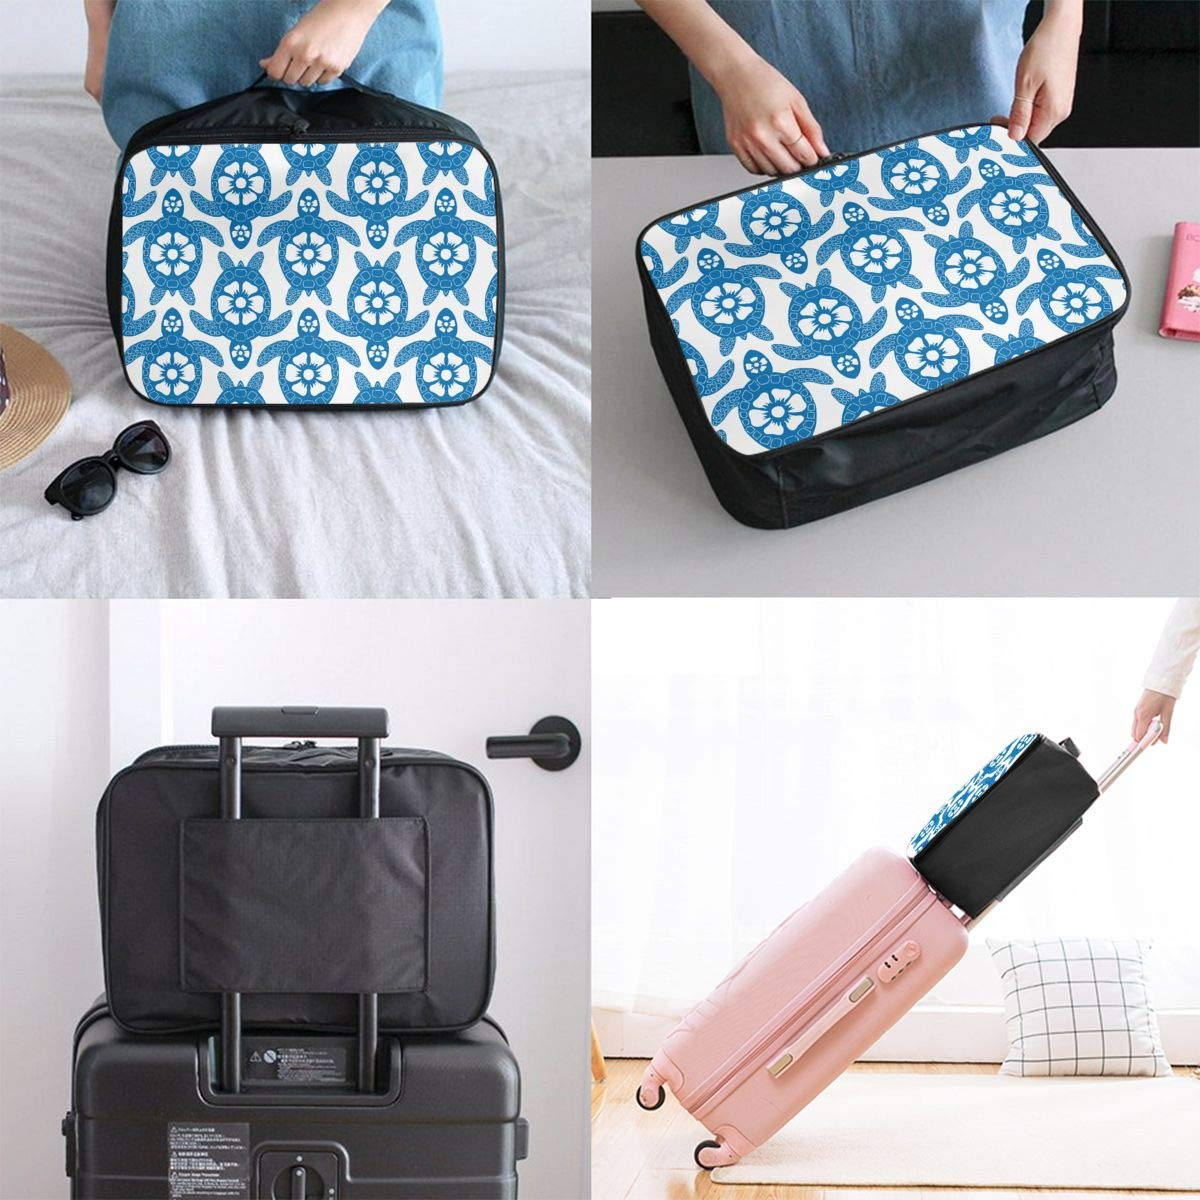 YueLJB Blue Tortoise Pattern Lightweight Large Capacity Portable Luggage Bag Travel Duffel Bag Storage Carry Luggage Duffle Tote Bag